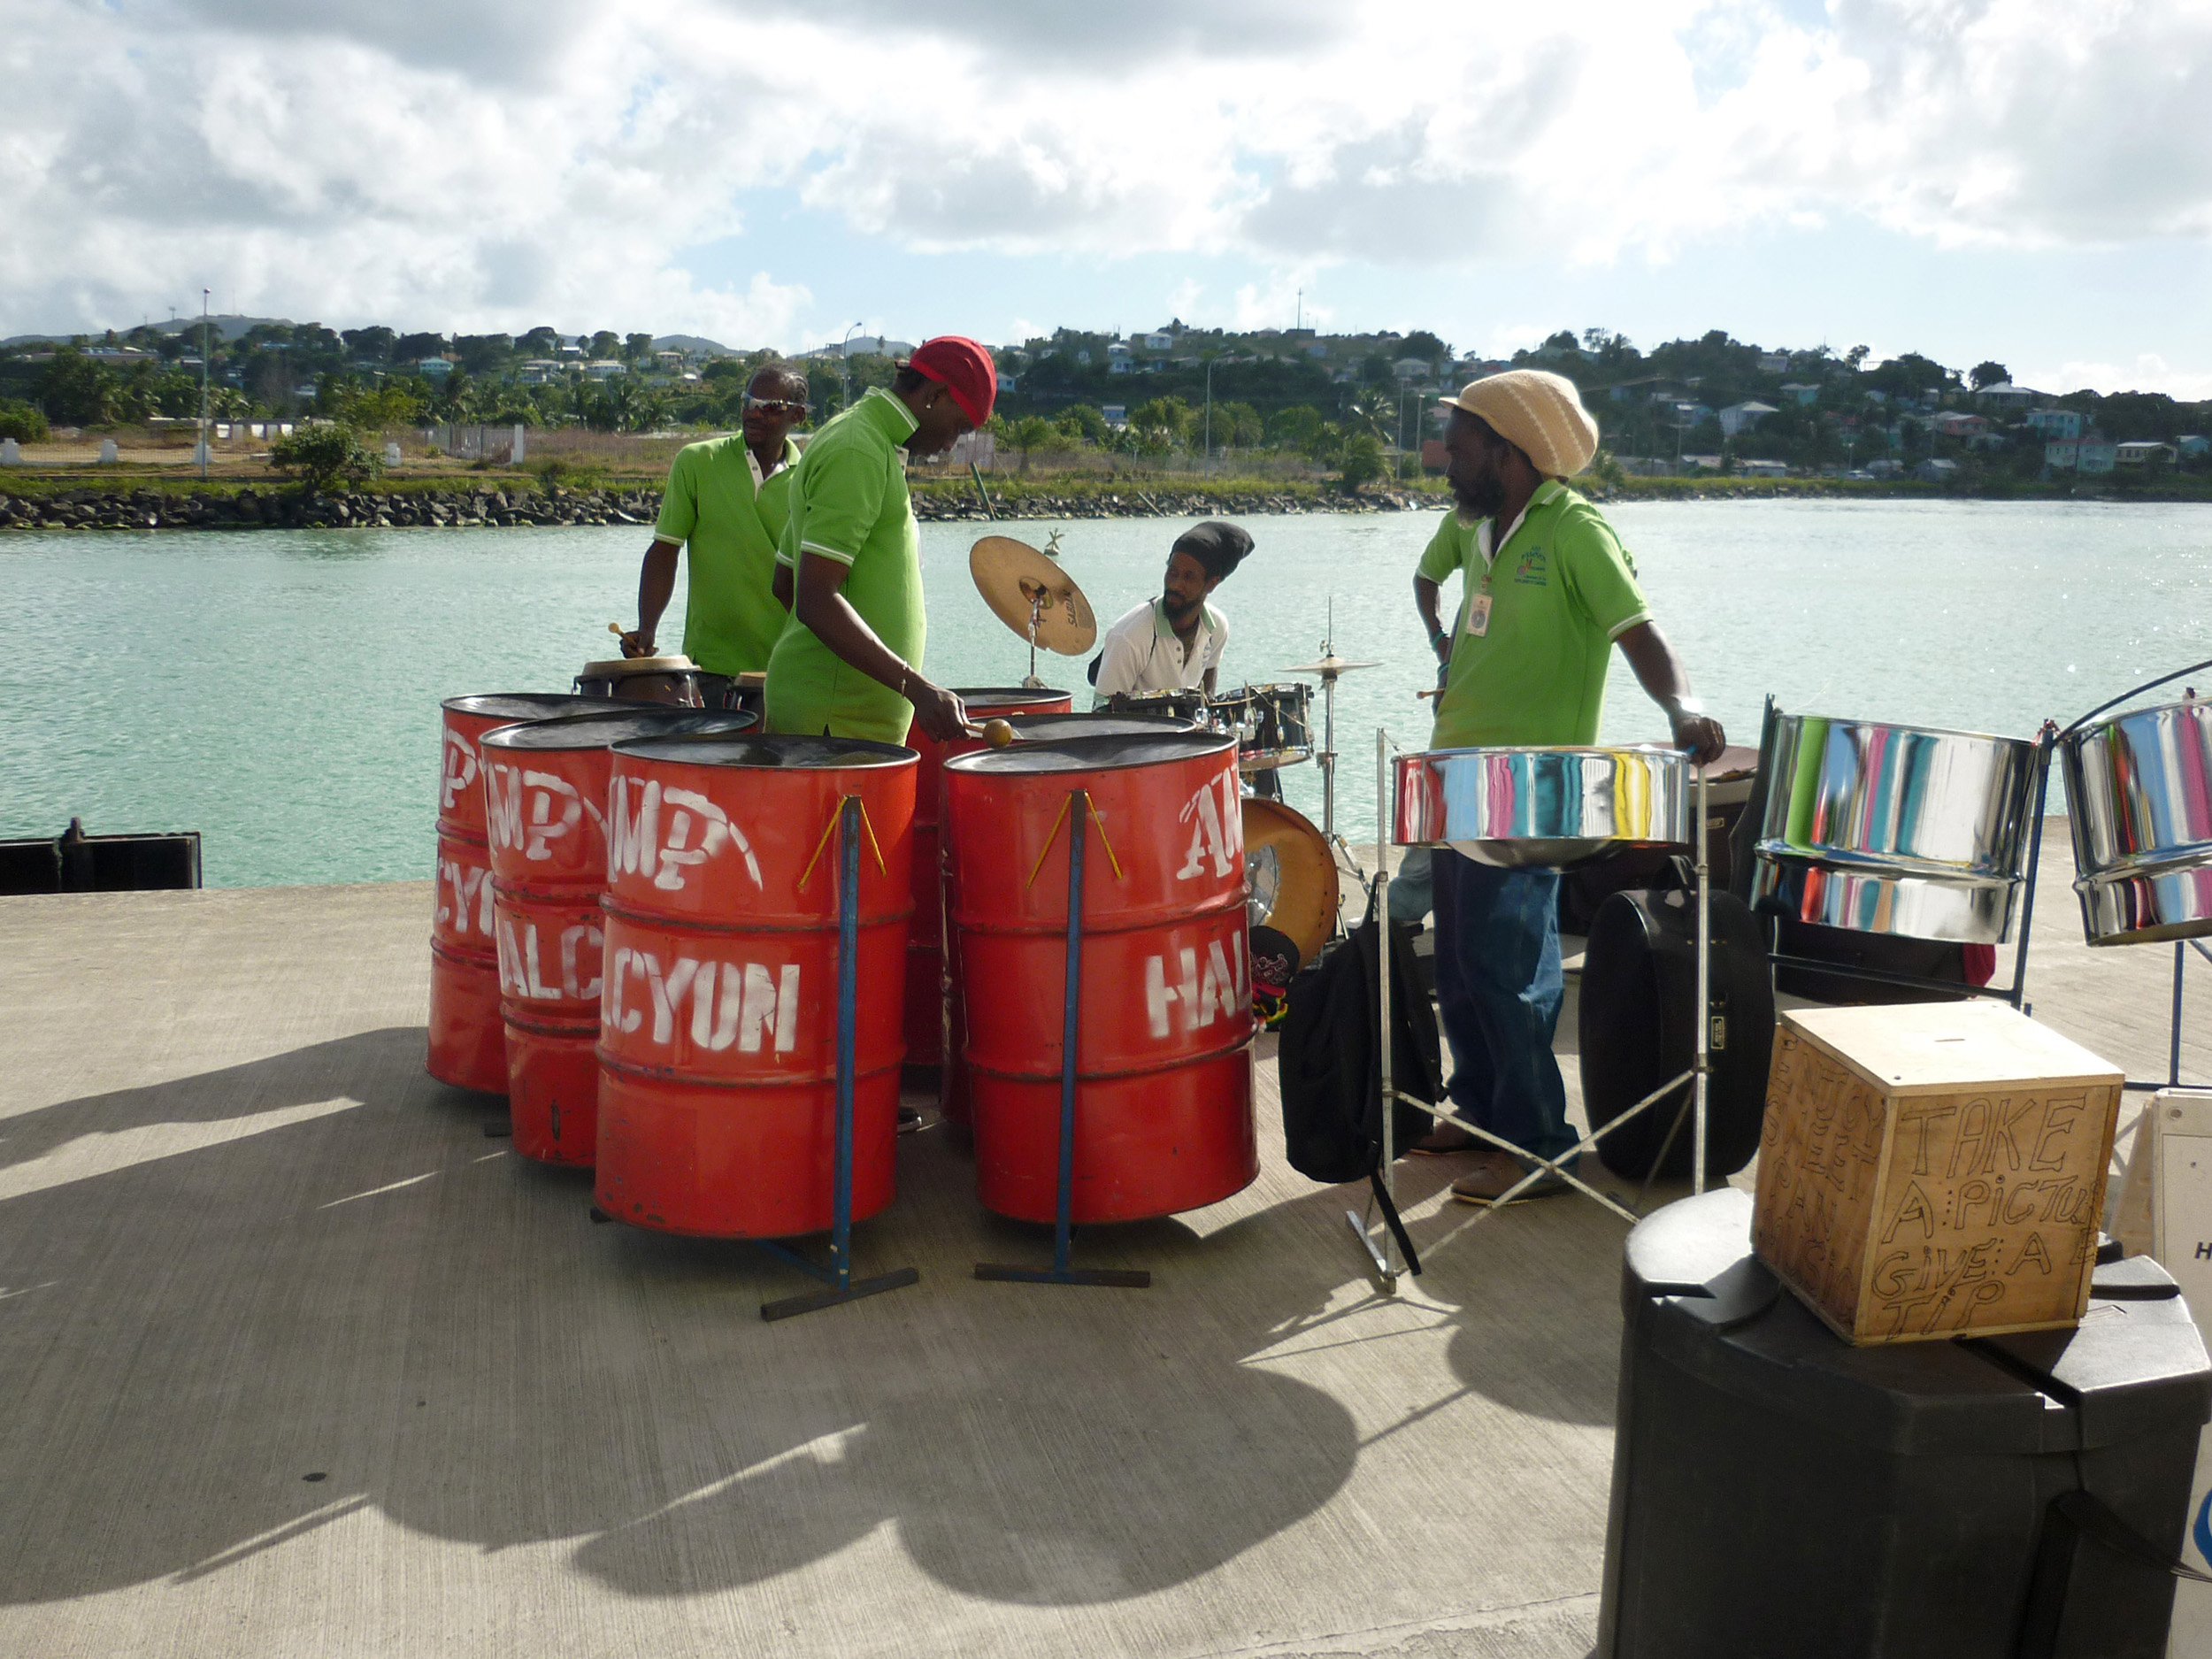 a steel band on the island of st thomas, us virgin islands